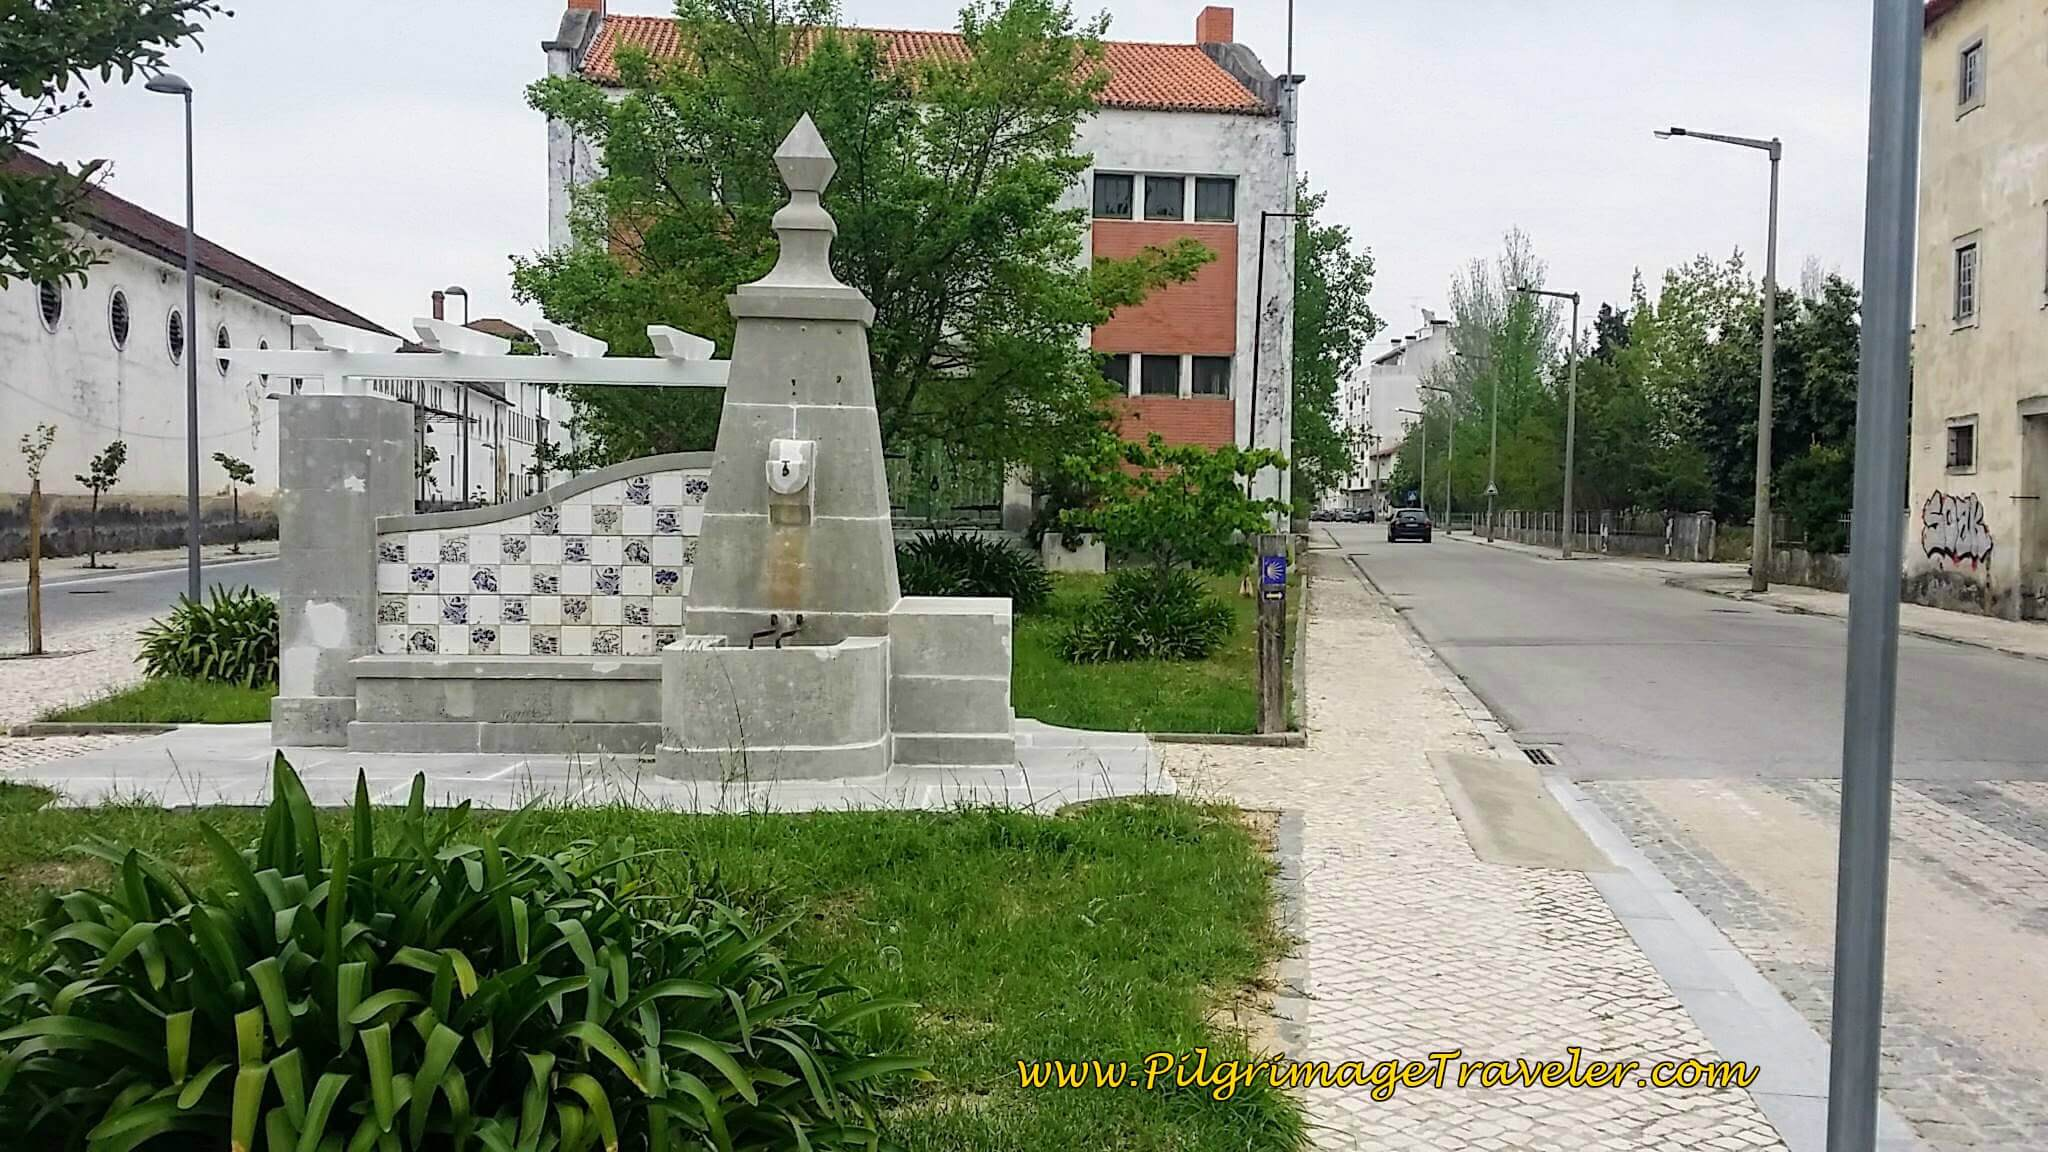 Right Turn at Fountain onto Rua Visc. Valdoeiro in Mealhadam Portugal